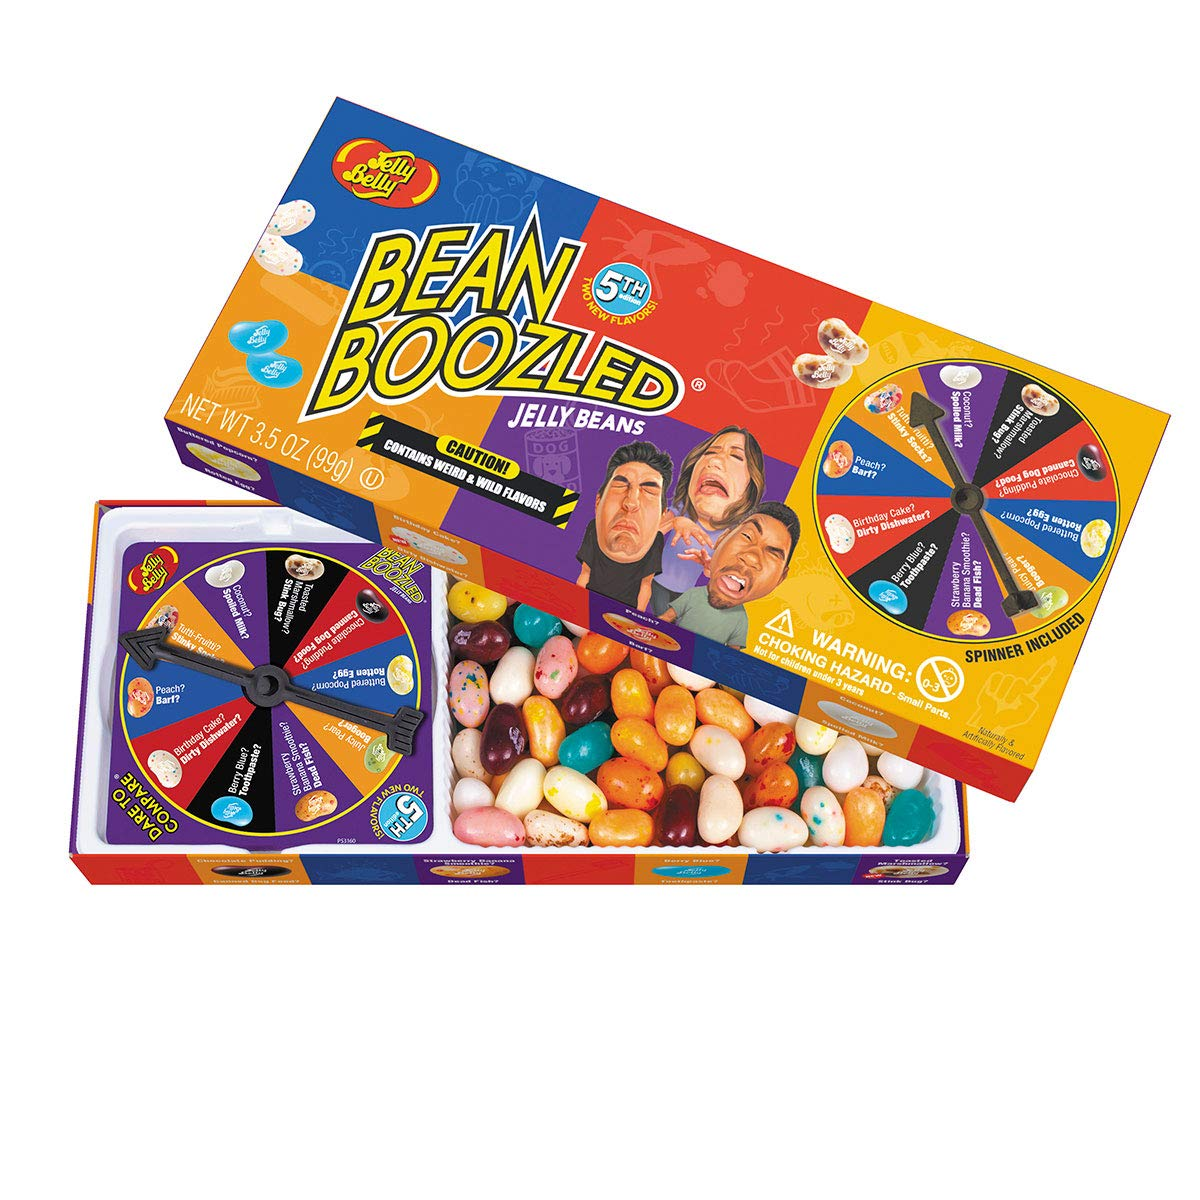 Jelly Belly BeanBoozled Jelly Beans Spinner Gift Box, 5th Edition, 3.5-oz by Jelly Belly